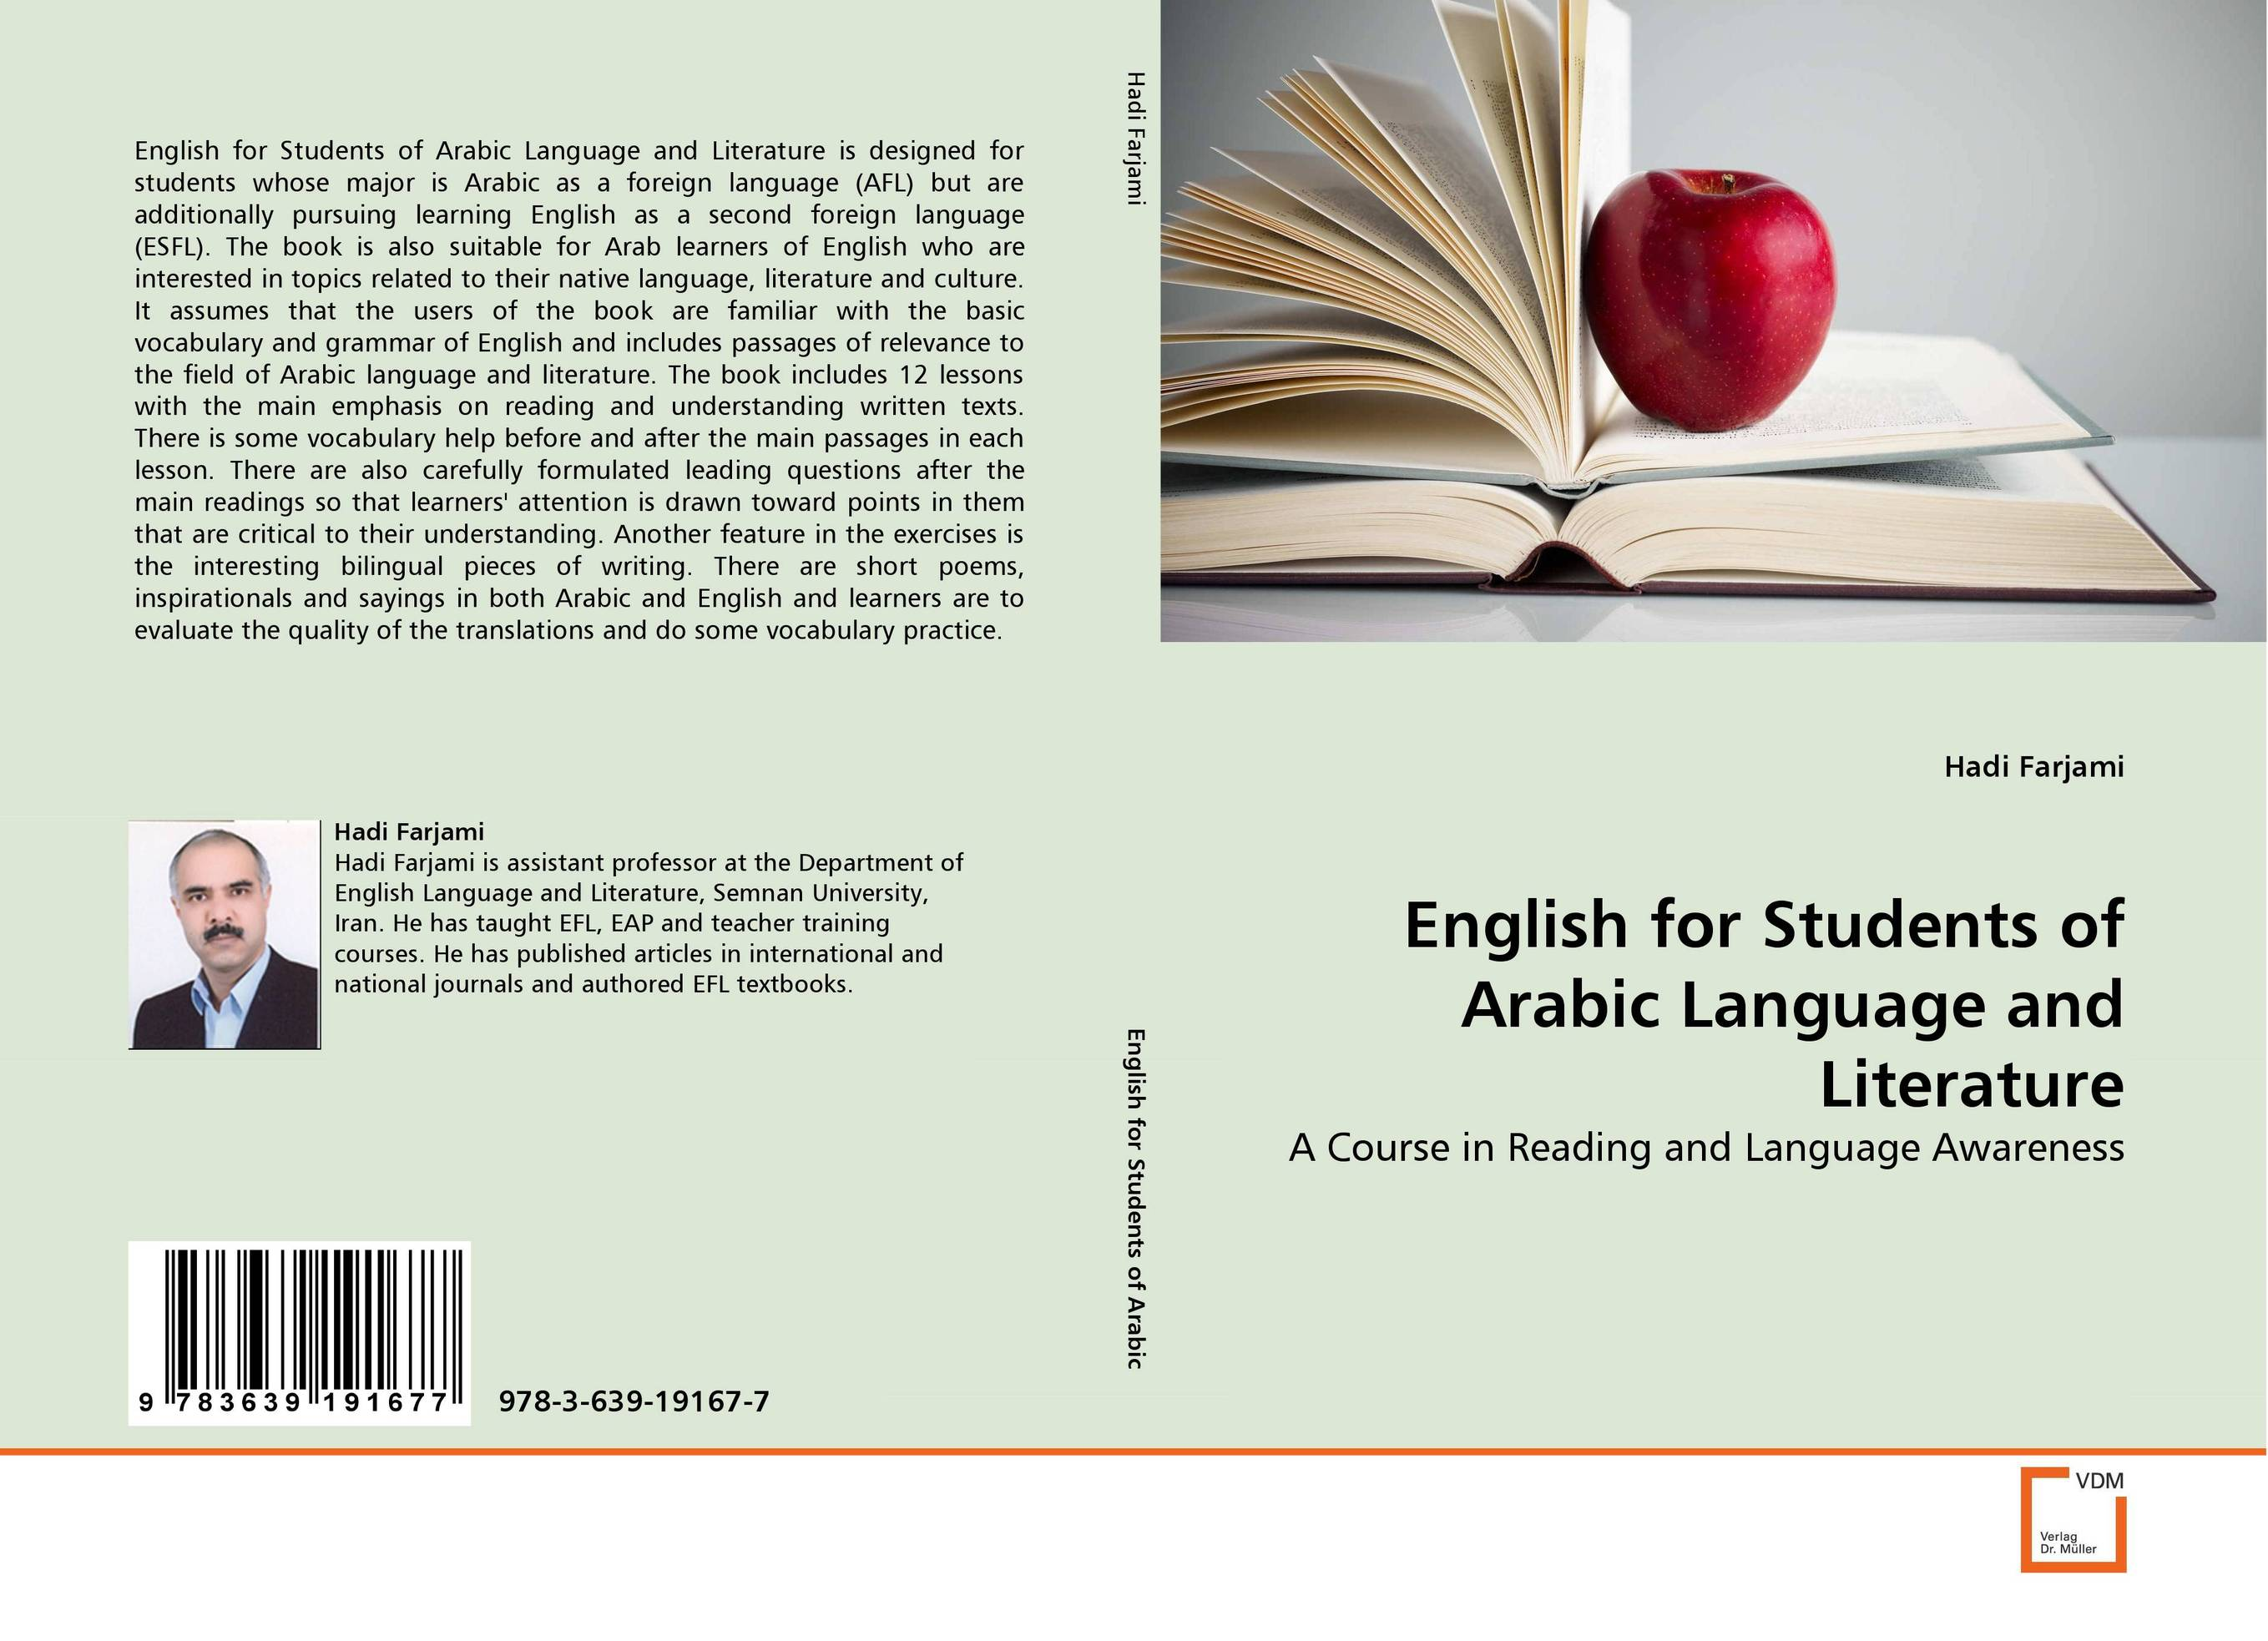 English for Students of Arabic Language and Literature